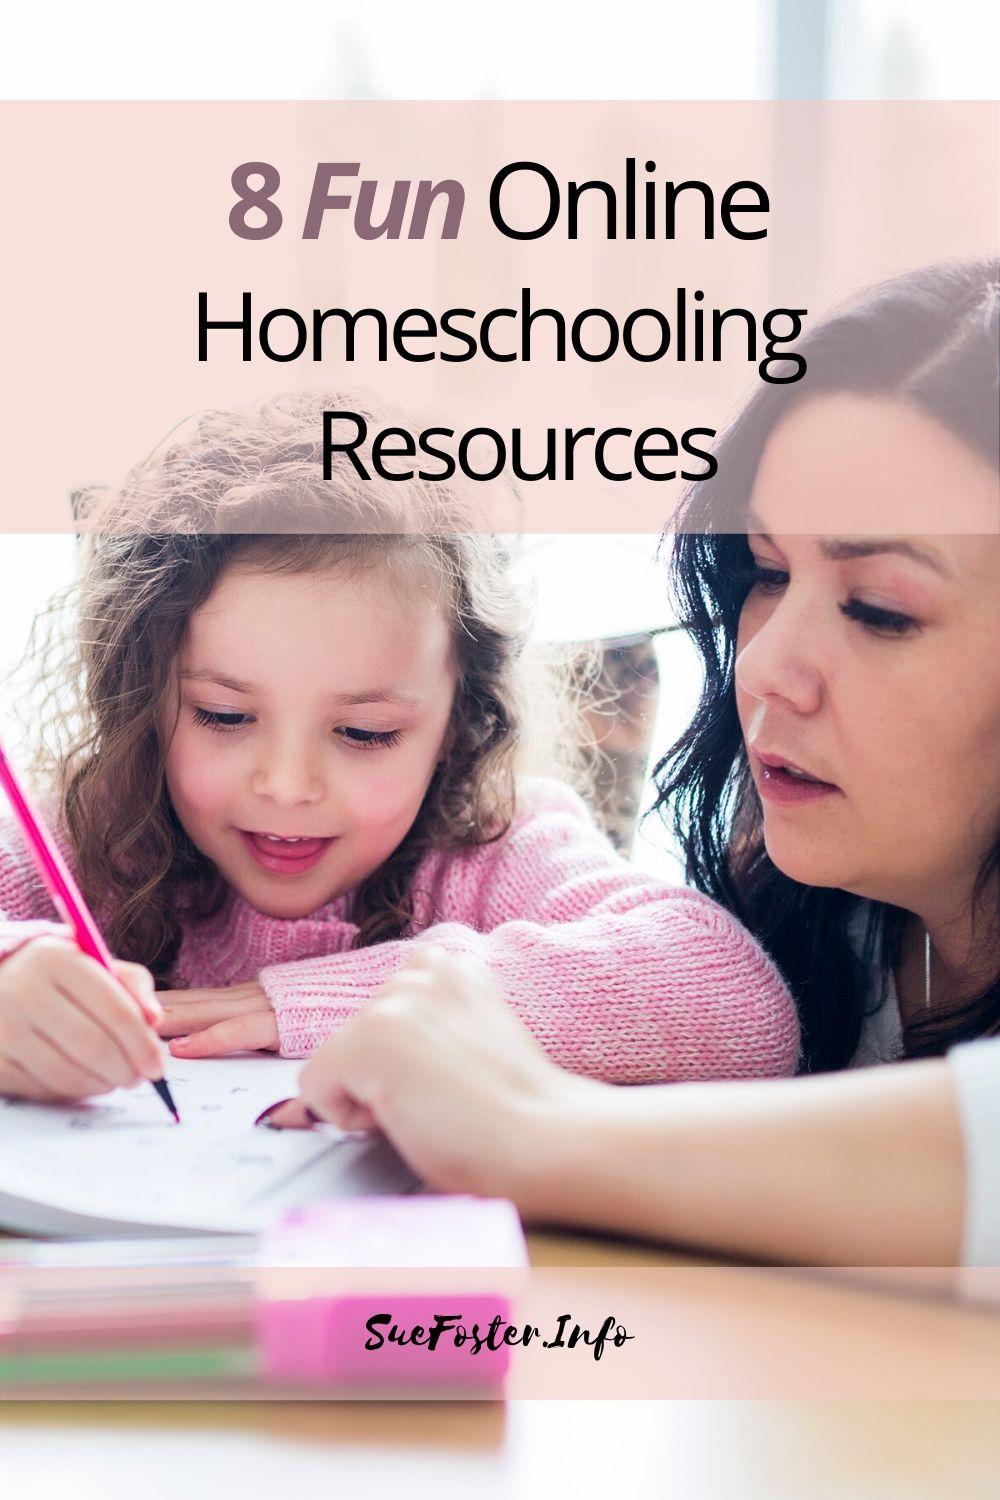 I've put together a list of  8 fun homeschooling resources that can assist you and your children with learning.